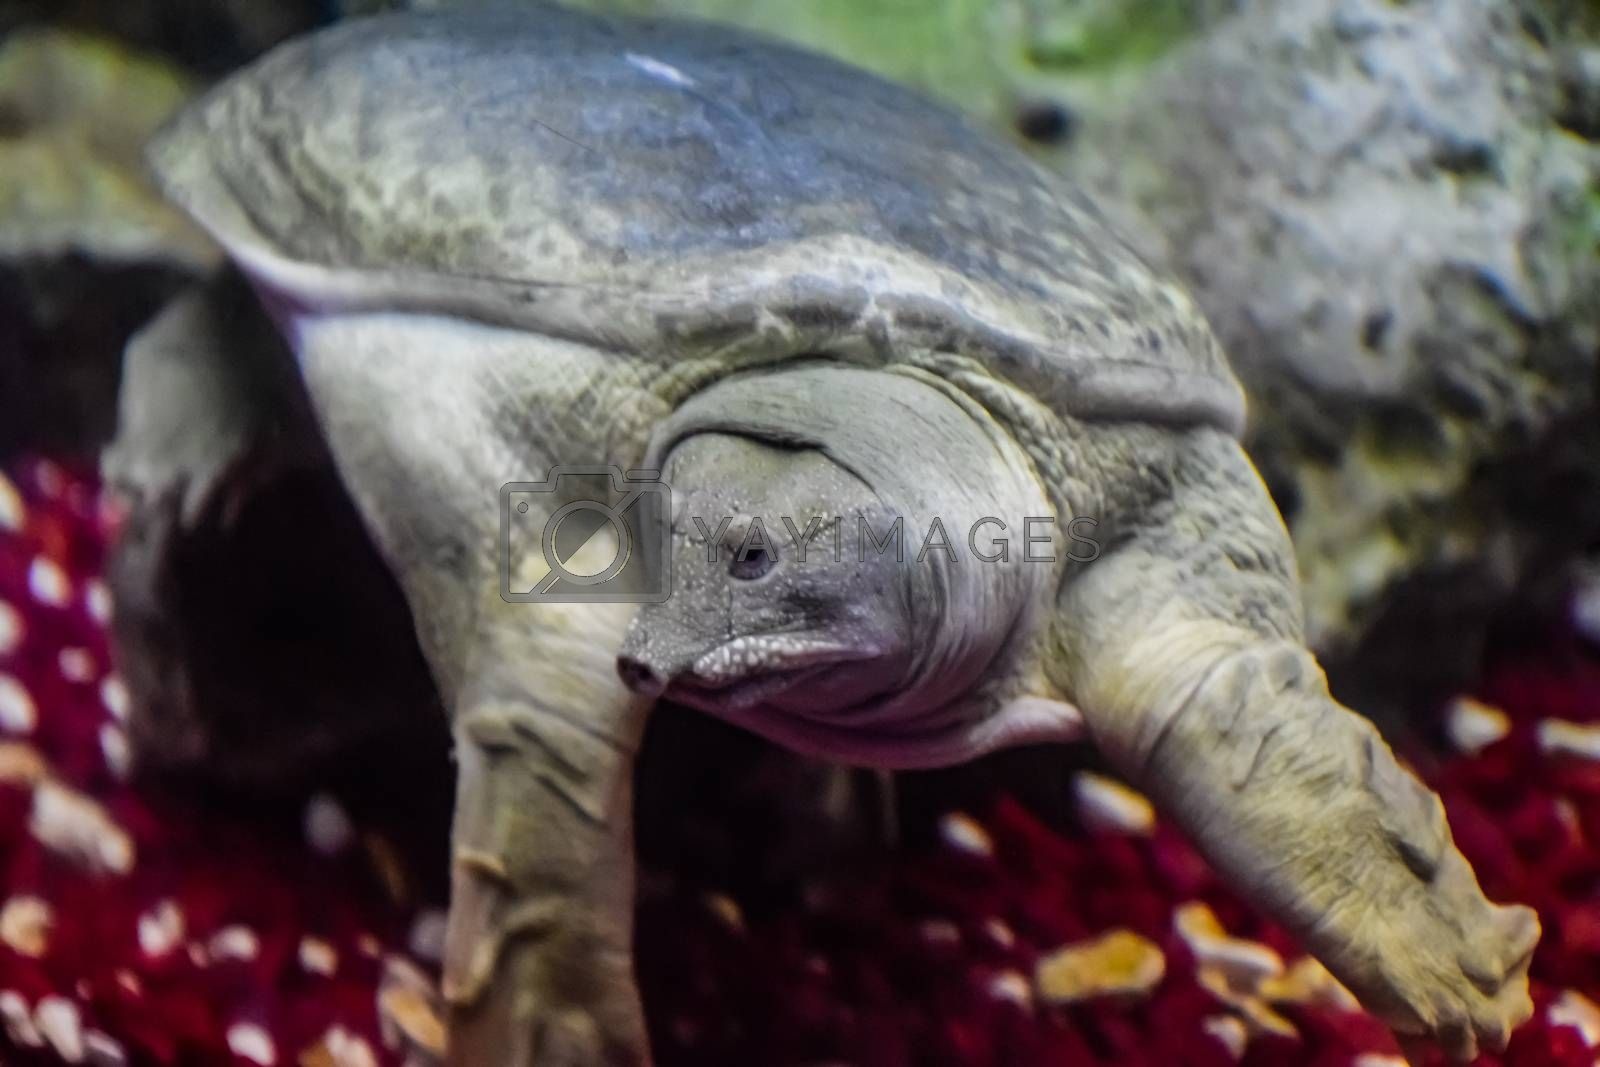 a Chinese softshell turtle a Pelodiscus sinensis